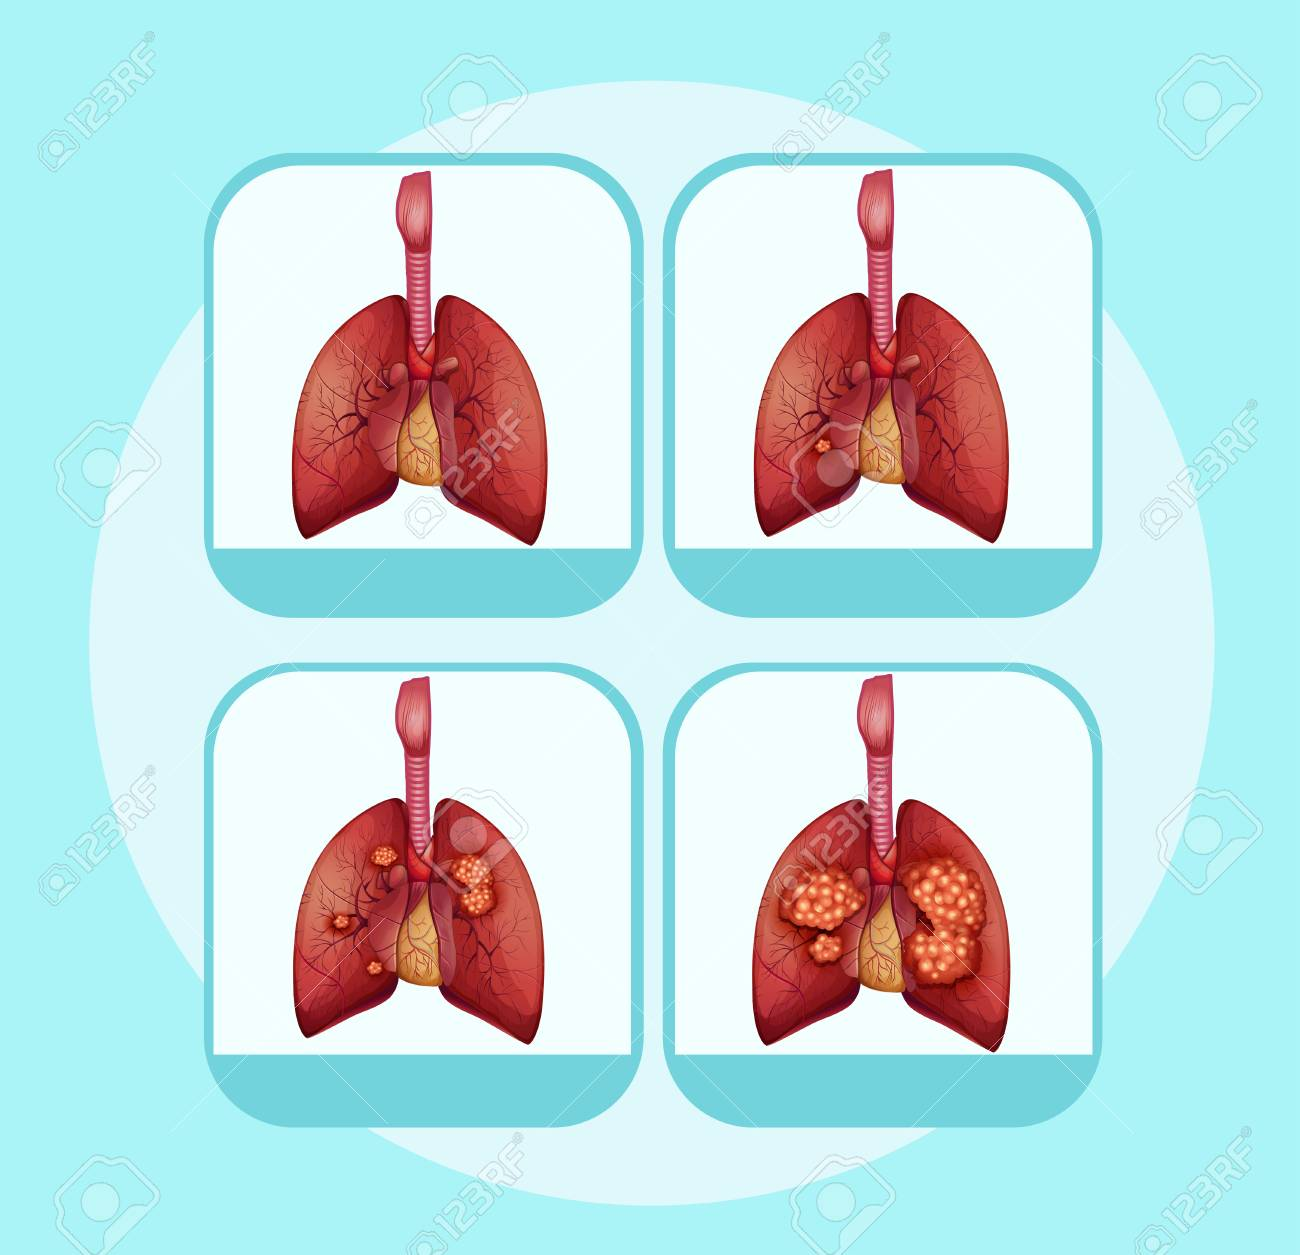 Diagram showing different stages of lung cancer illustration